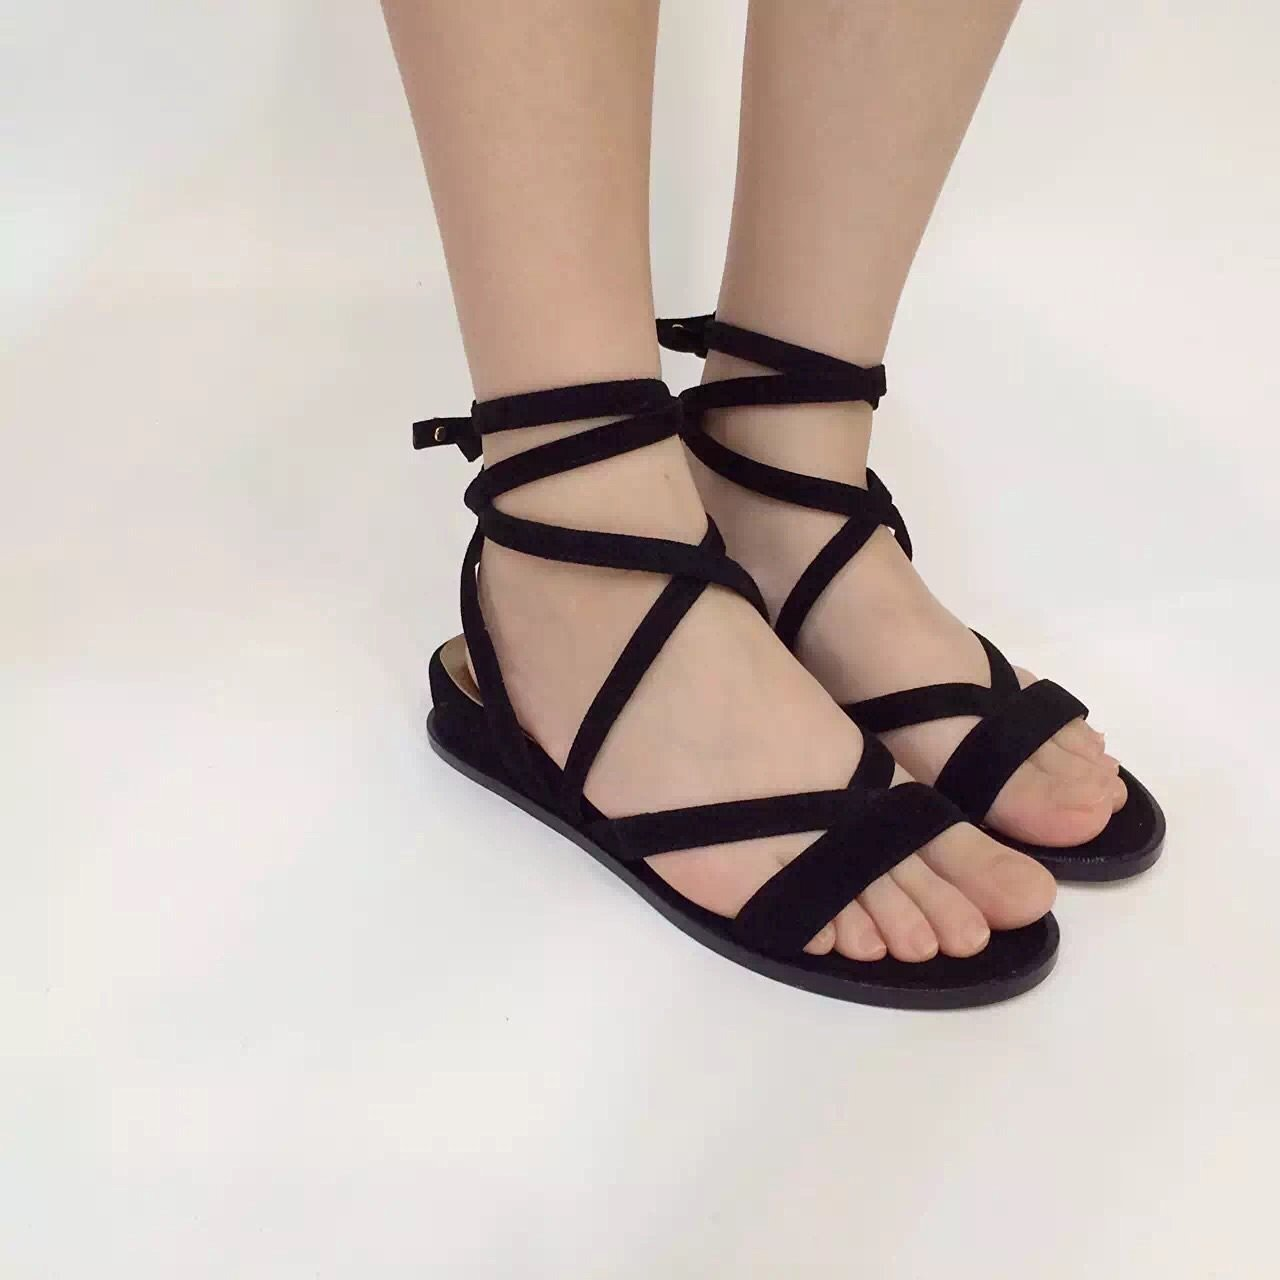 1461cb1c6b8 ALEXANDER WANG Gladiator sandal crafted from textured nappa leather Leather  upper Open toe Lace-up